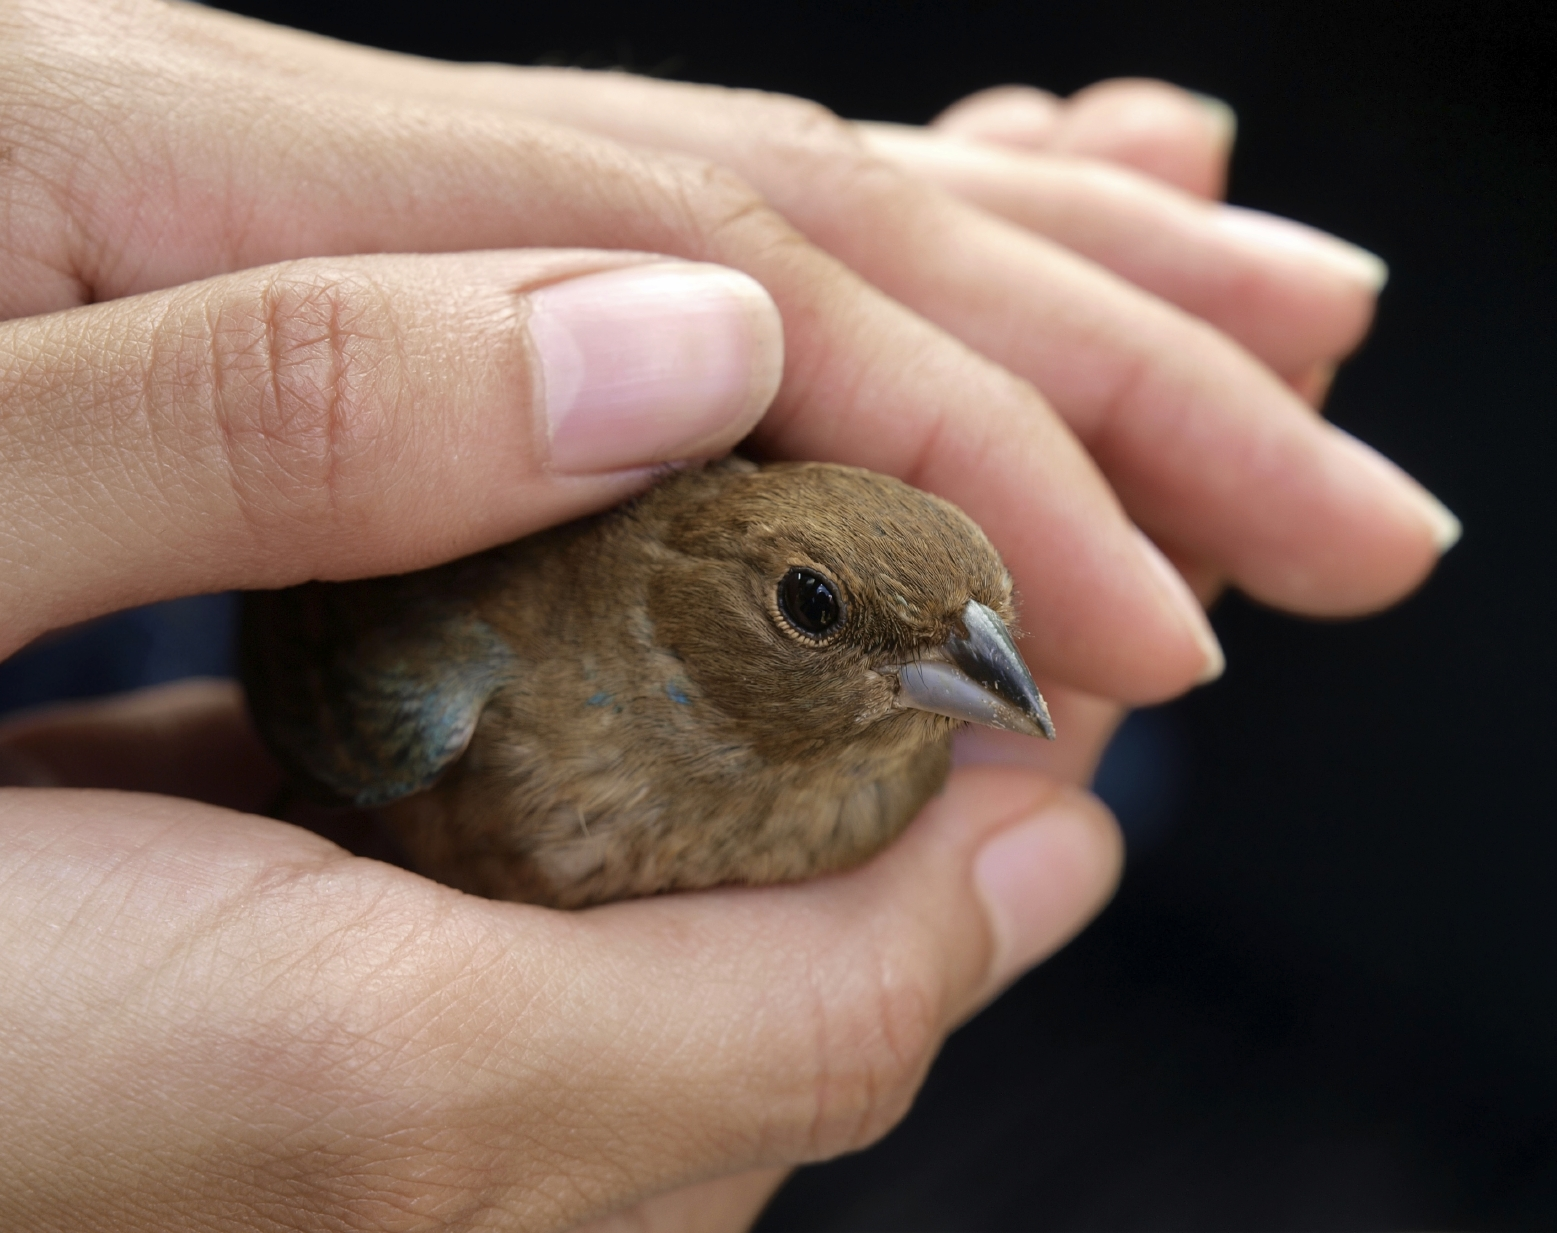 A bird in hand is worth two in the bush part 3 8